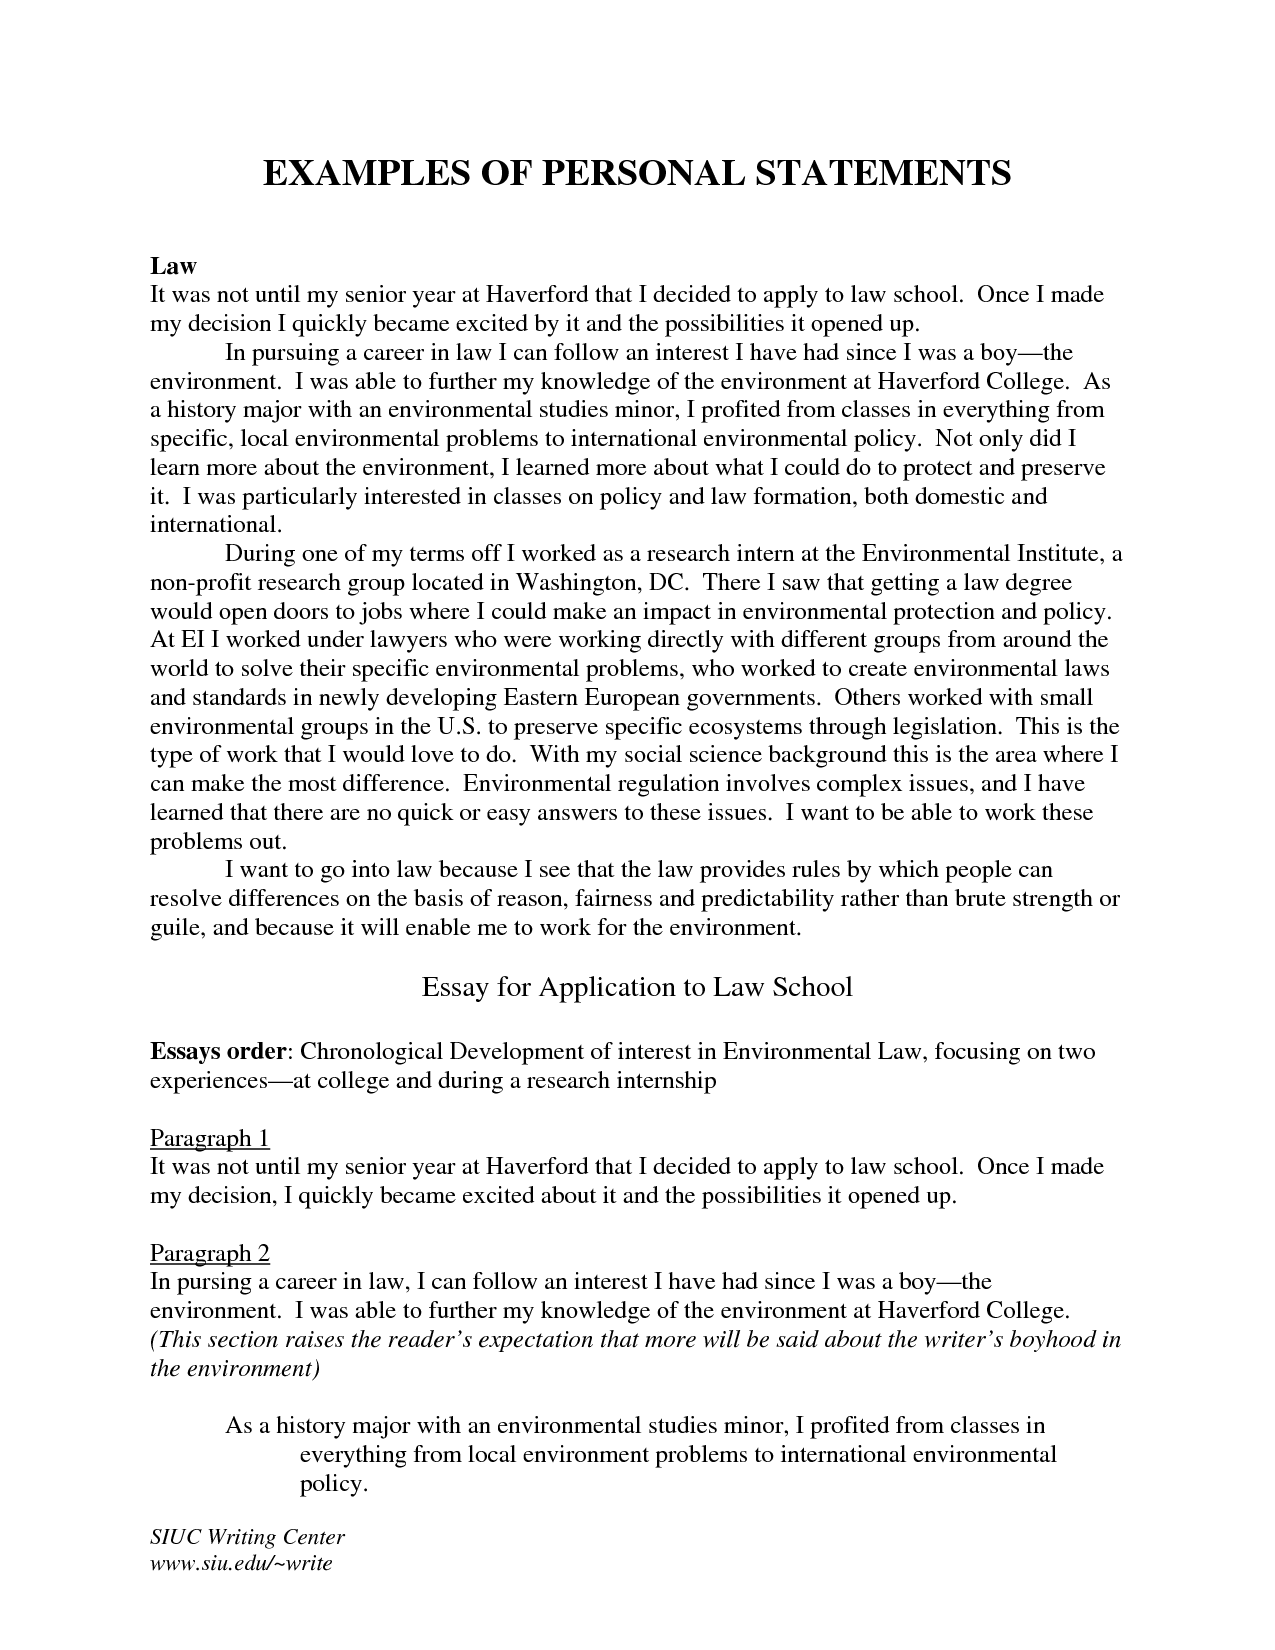 Essays On English Literature Grad School Essays Samples Offers Tips On Writing A Statement Of Grad School  Essays Samples Offers Essay Senior Year Sample Essay For High School Students also Topics For Synthesis Essay Senior Year Essay Personal Narrative Essay Samples Address Example  Topics For Argumentative Essays For High School